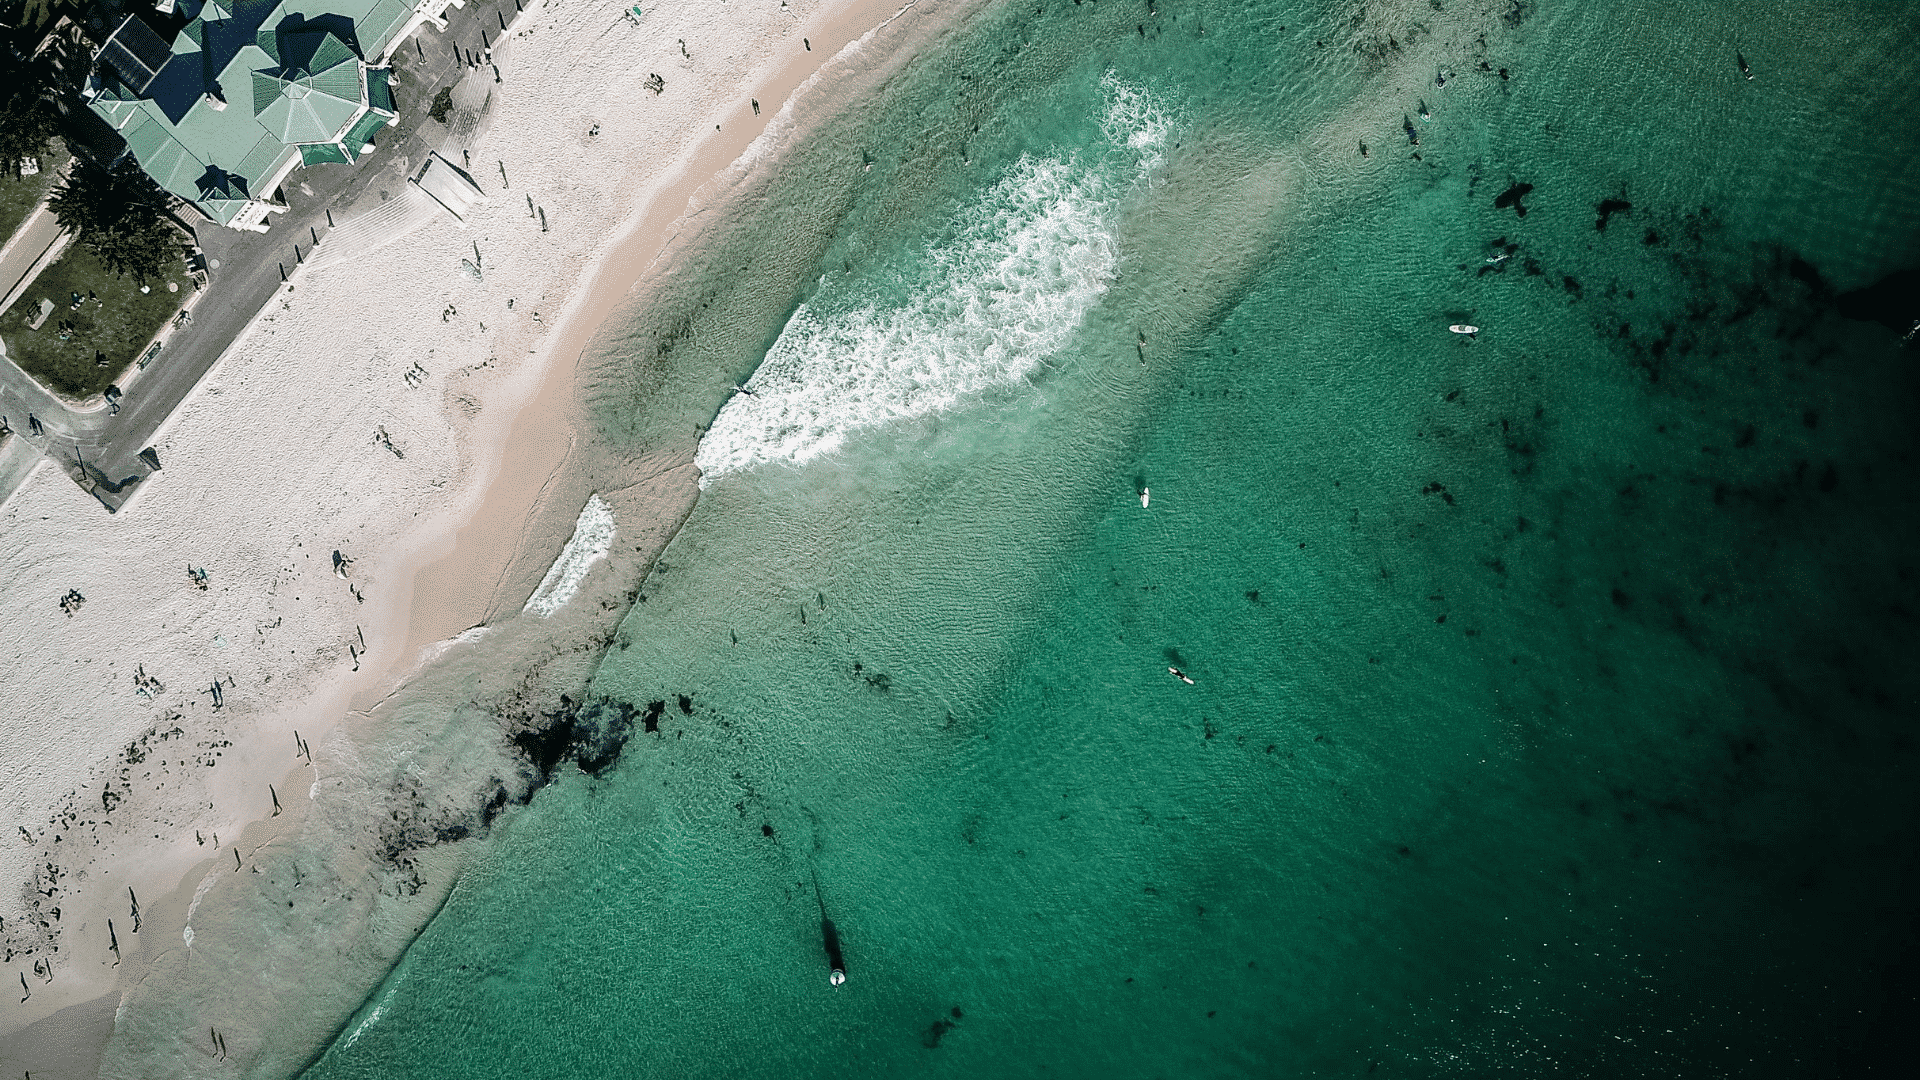 A beach in Australia from above